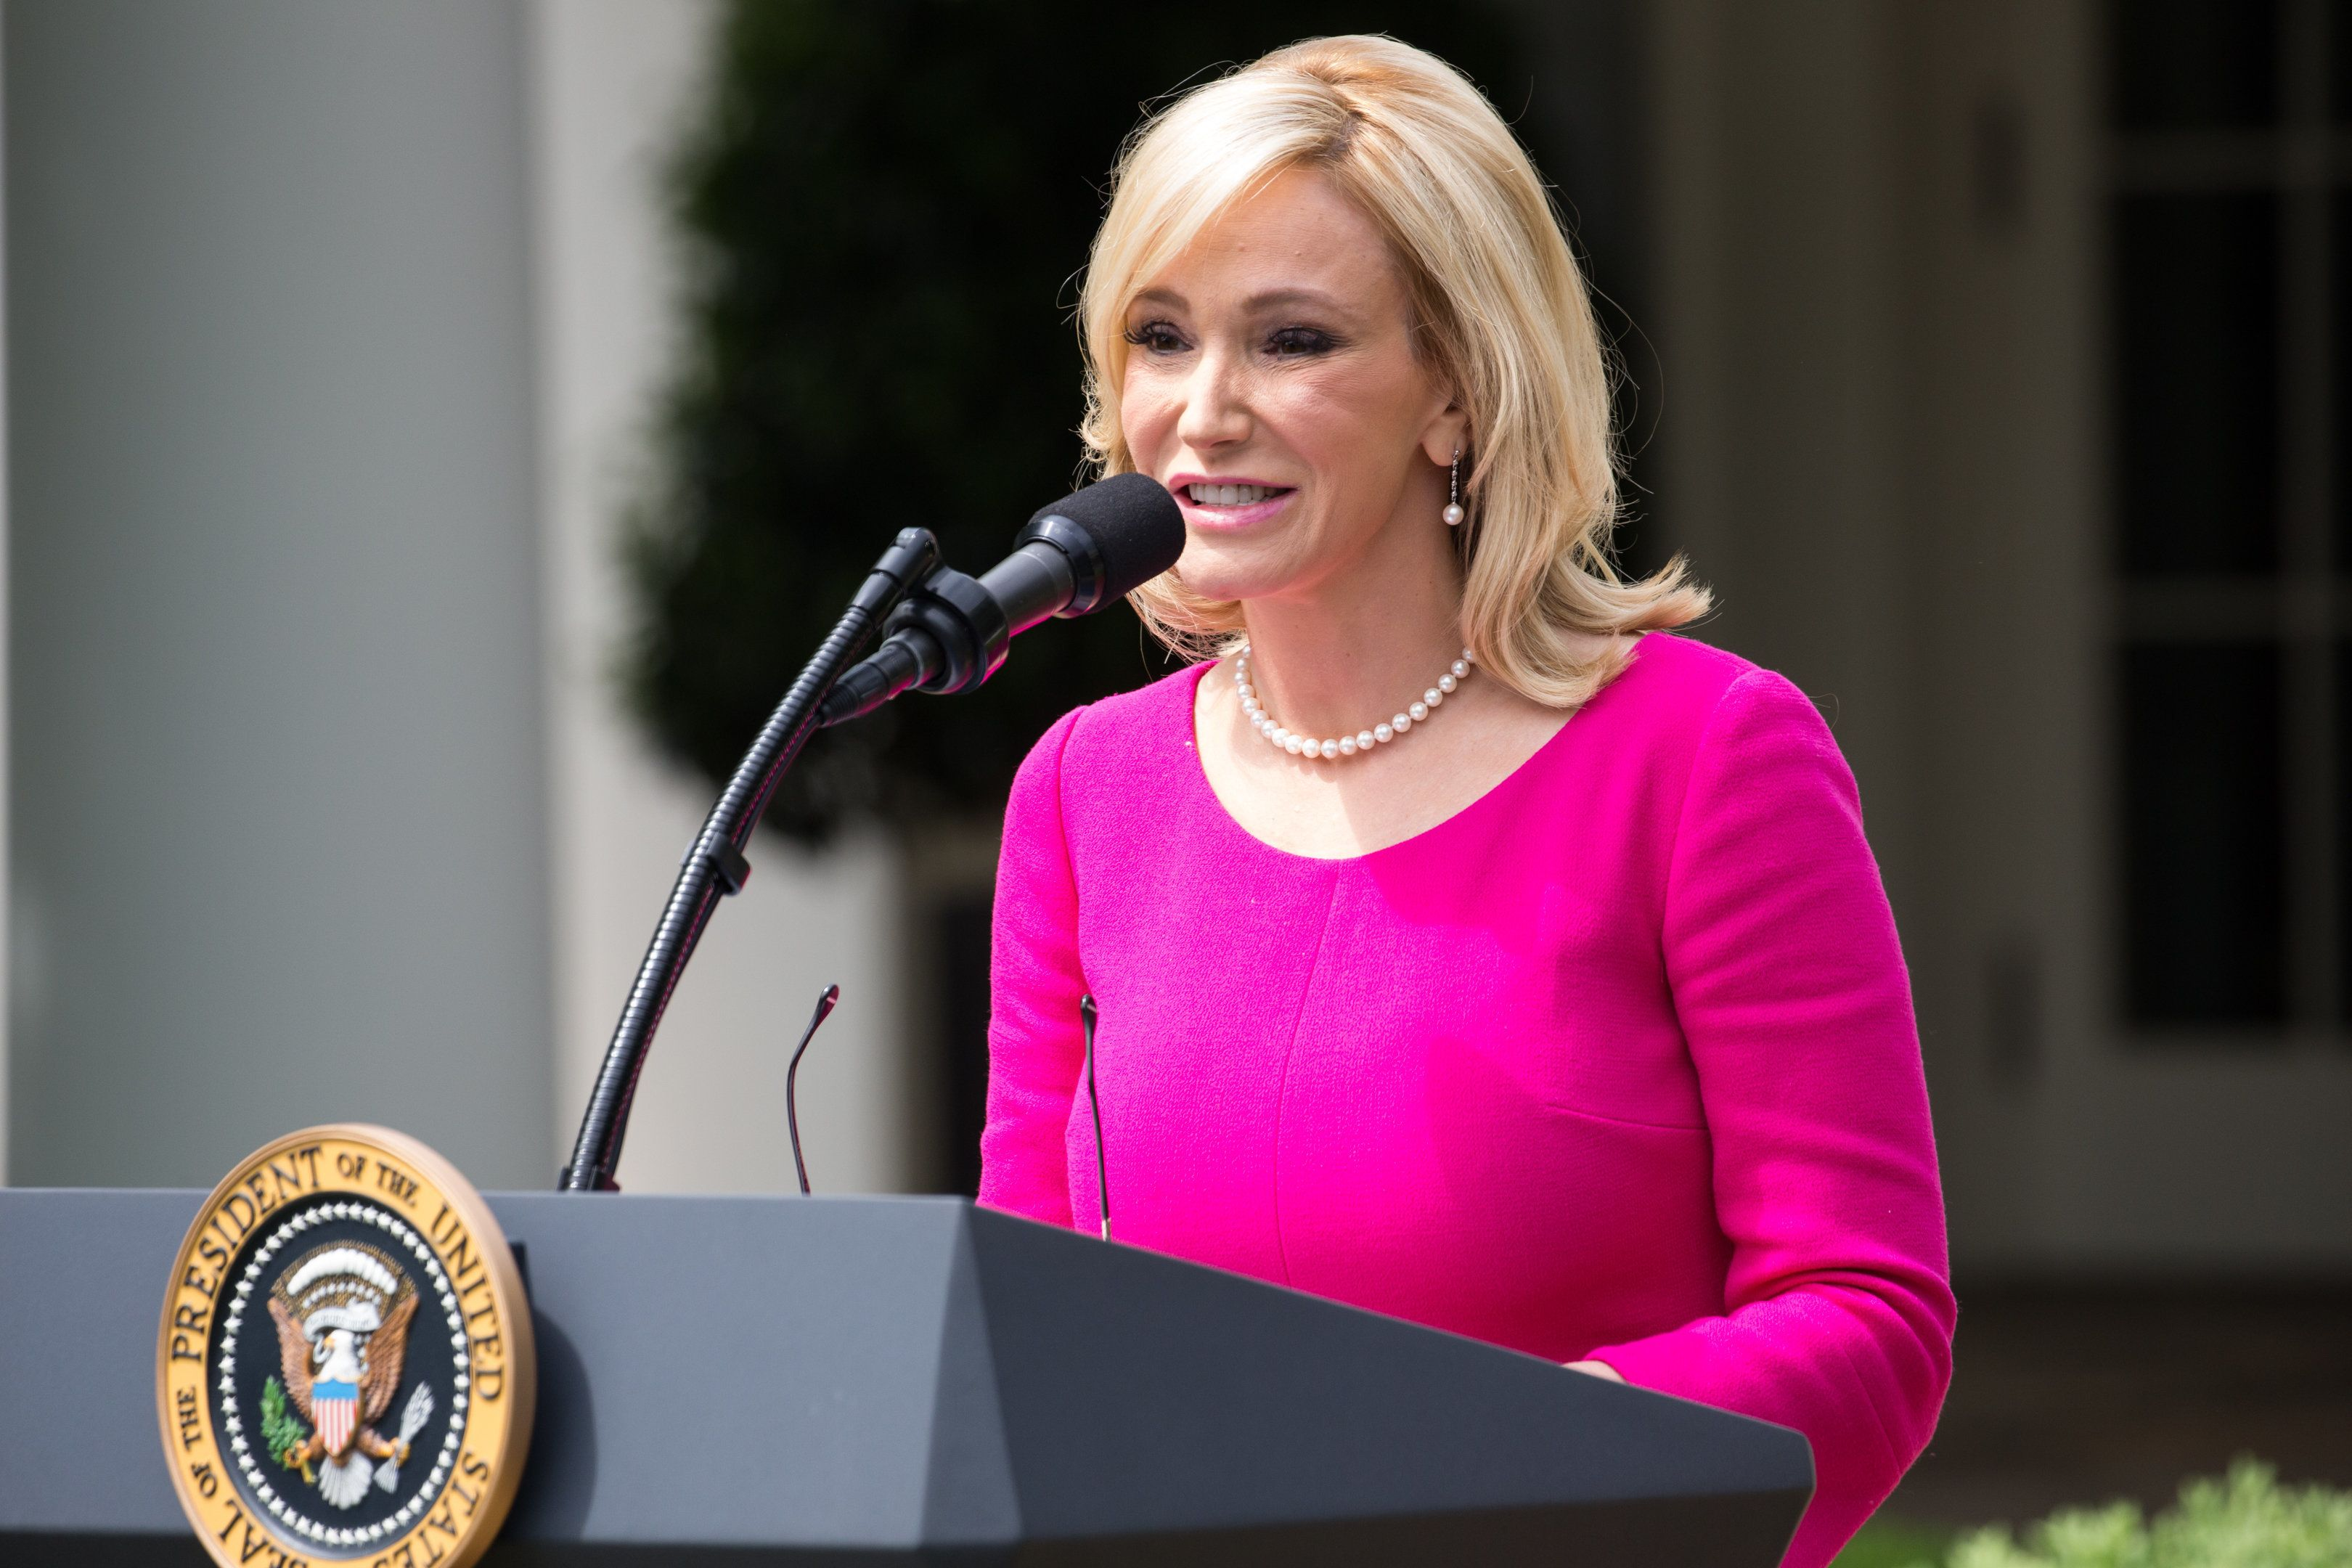 Paula White, a spiritual adviser to the president, speaks at the National Day of Prayer ceremony at the White House